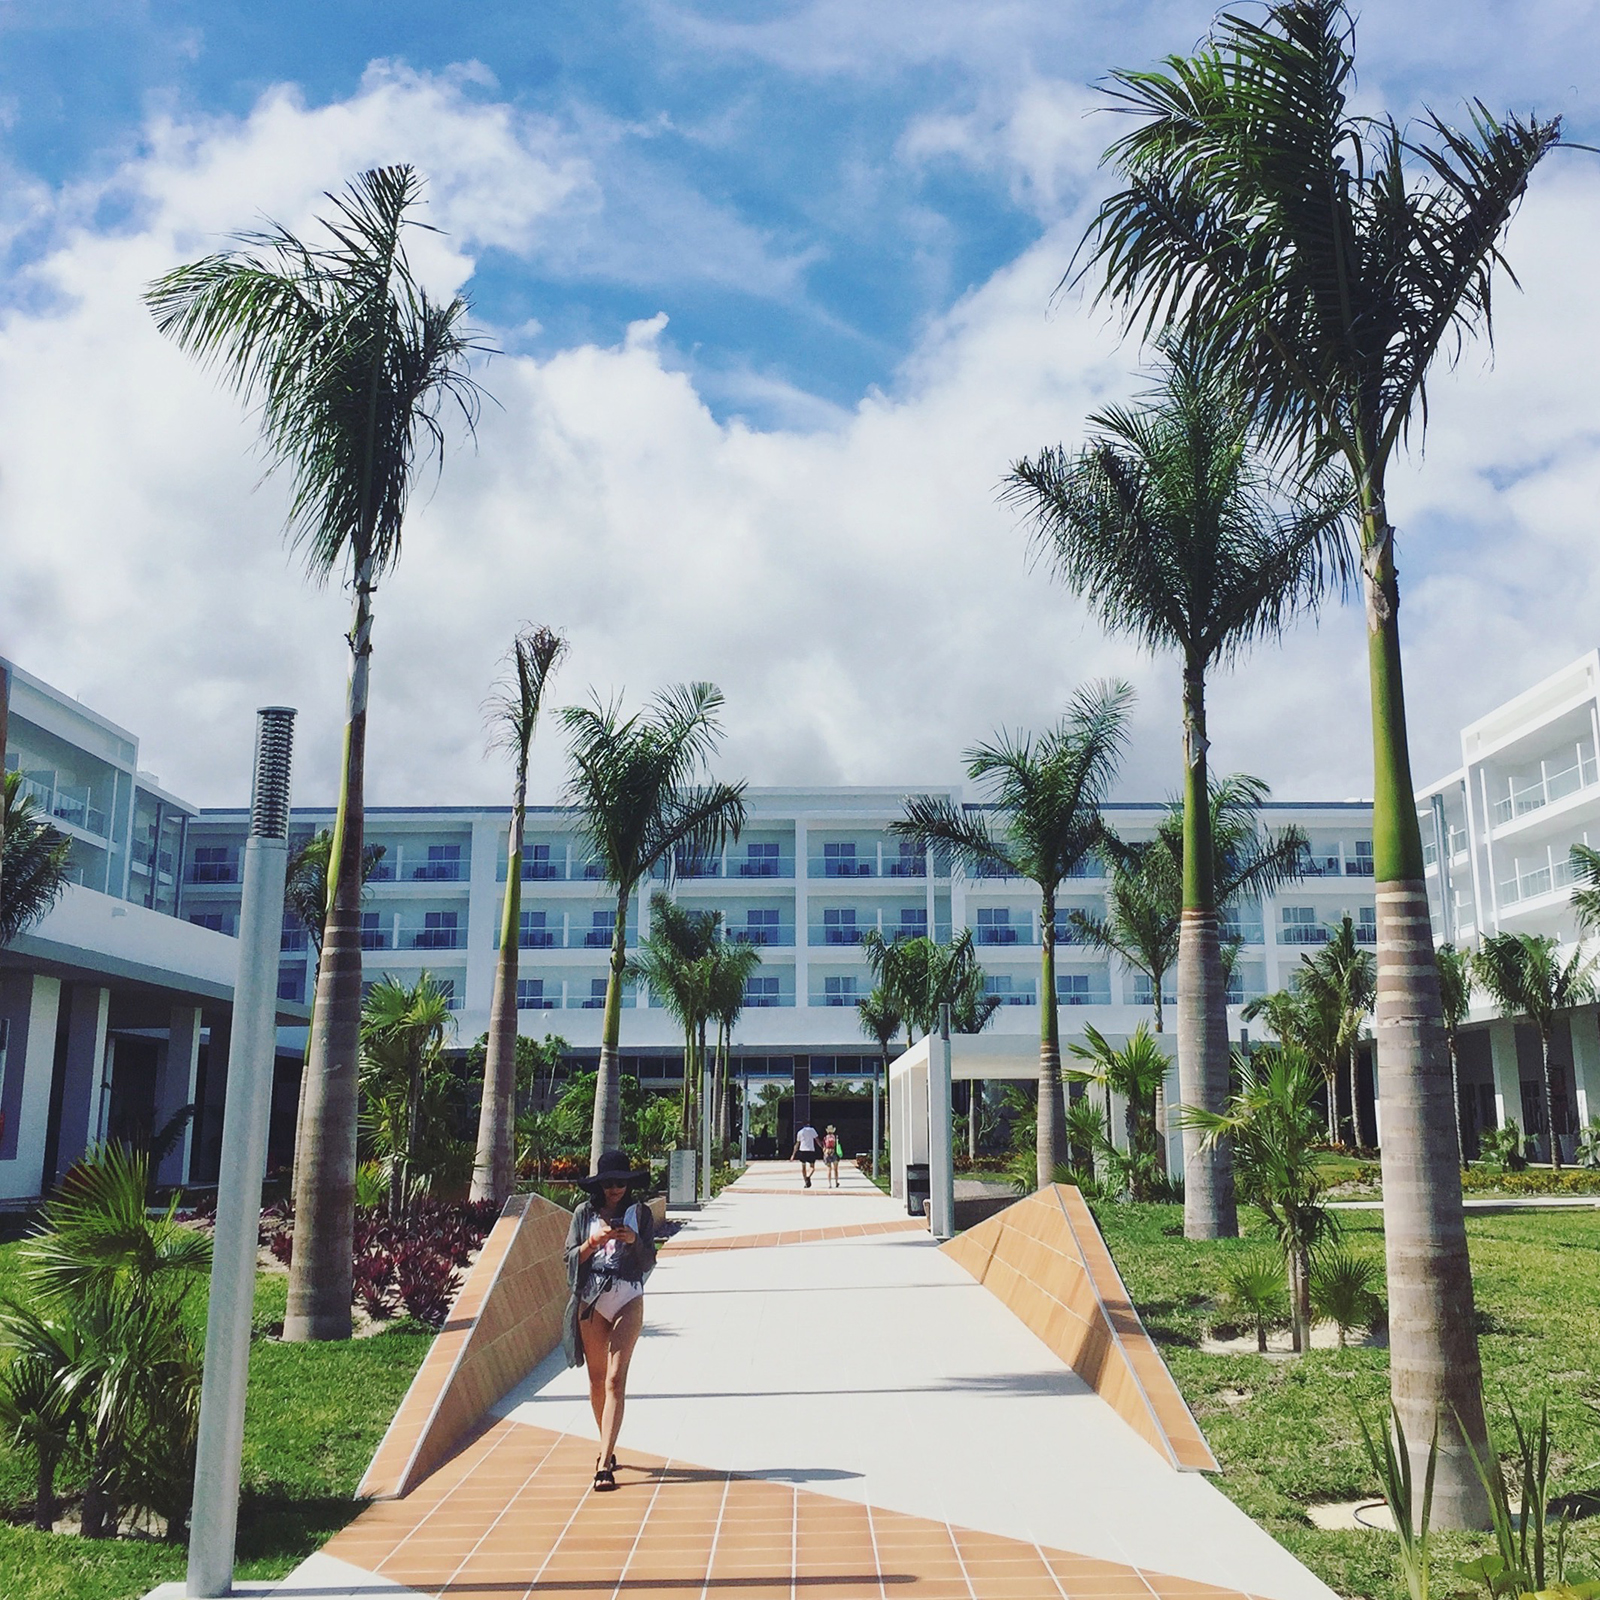 Strolling the resort at Riu Dunamar